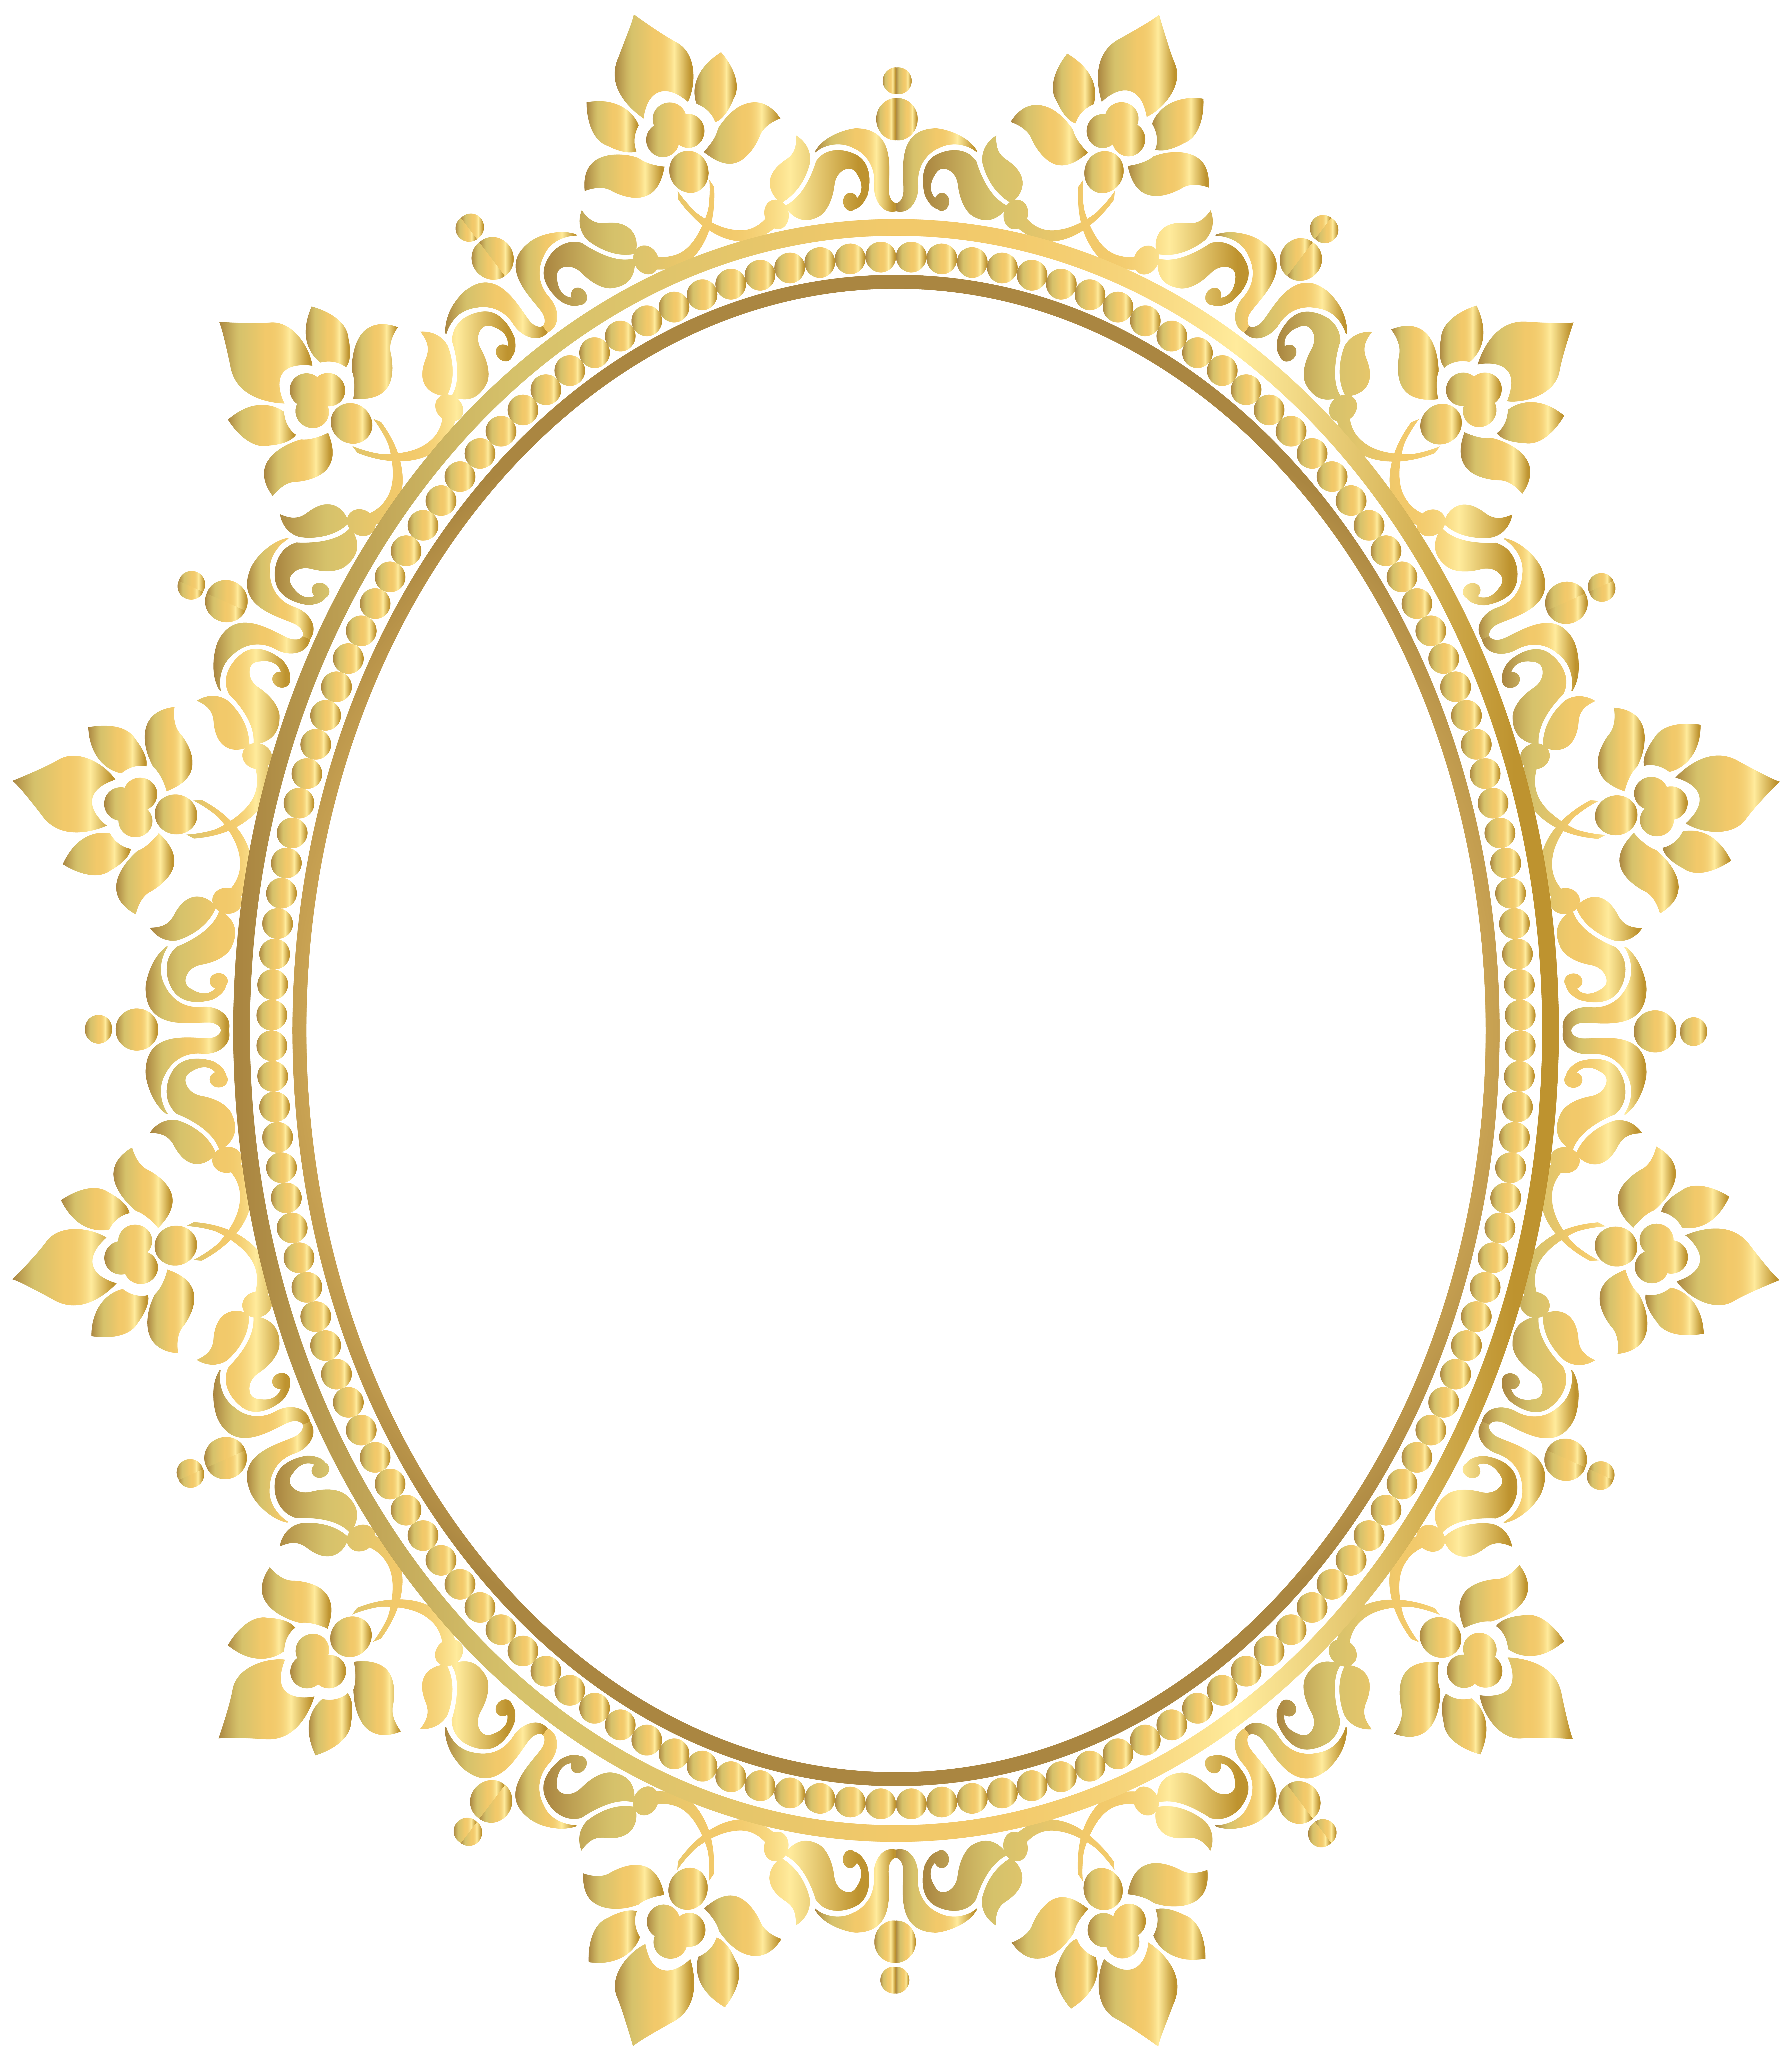 jpg library download Clipart borders and frame. Oval decorative border transparent.